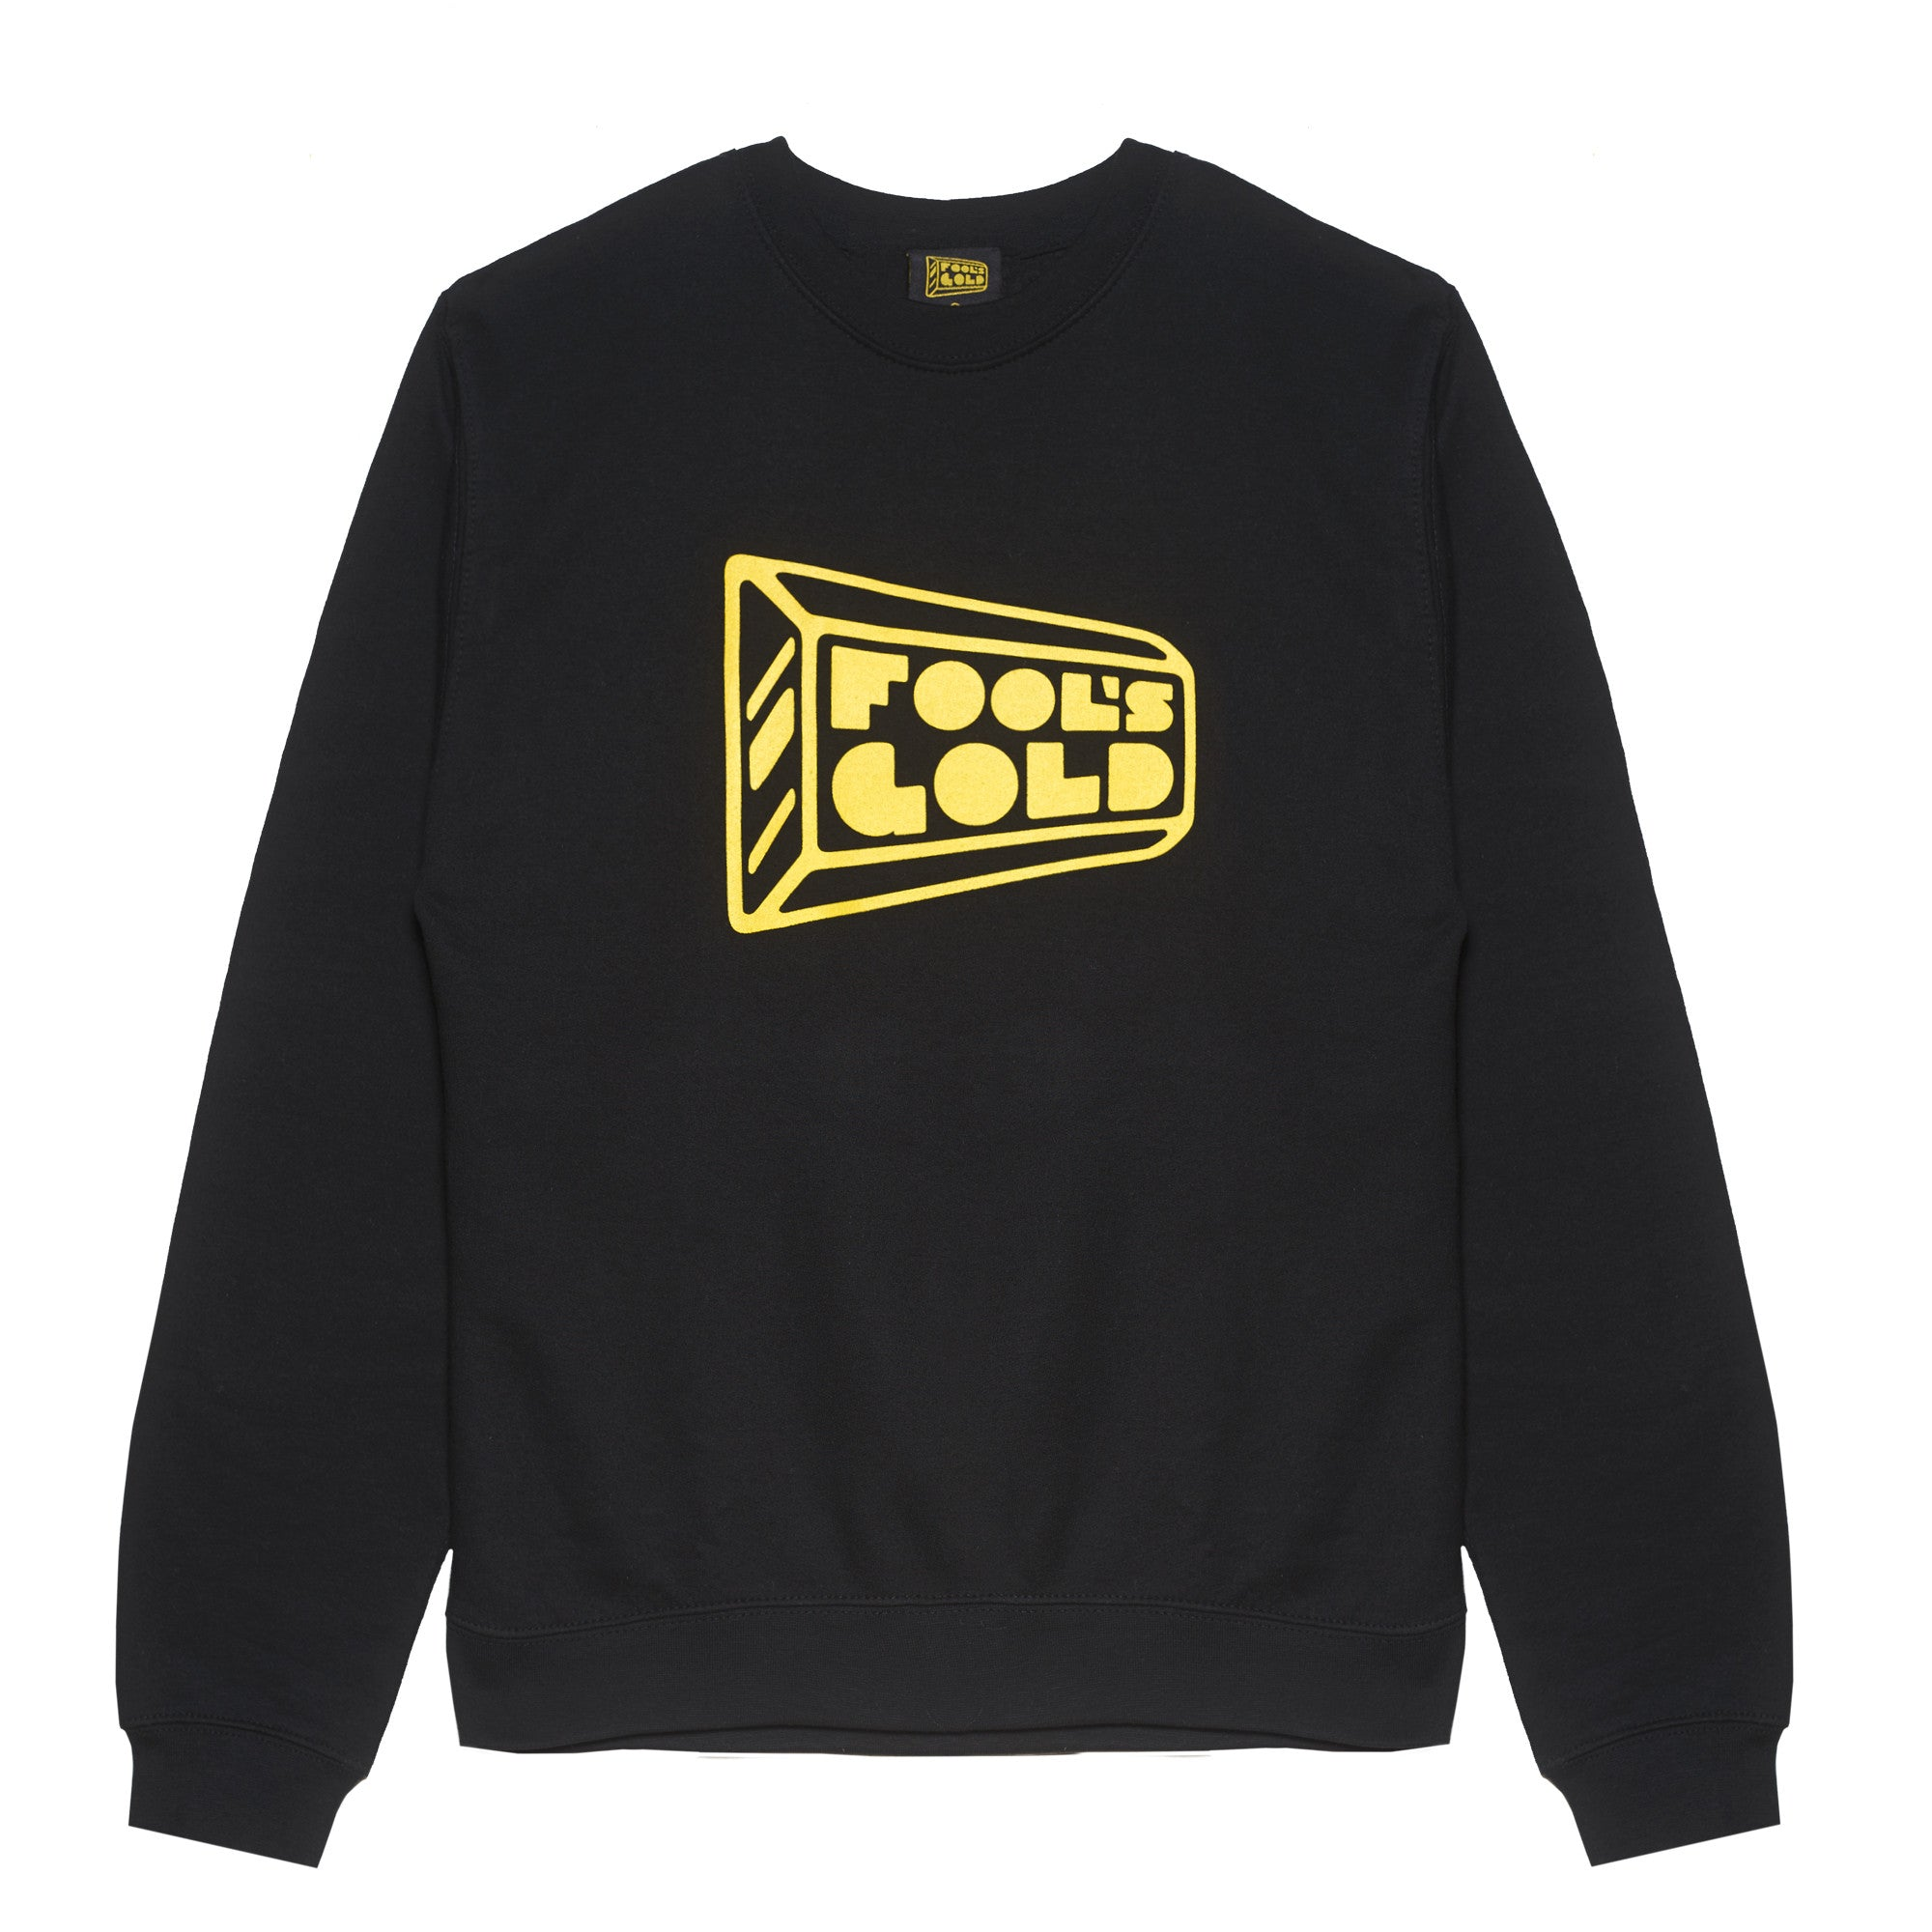 "Fool's Gold ""Logo"" Crewneck - Black / Gold"